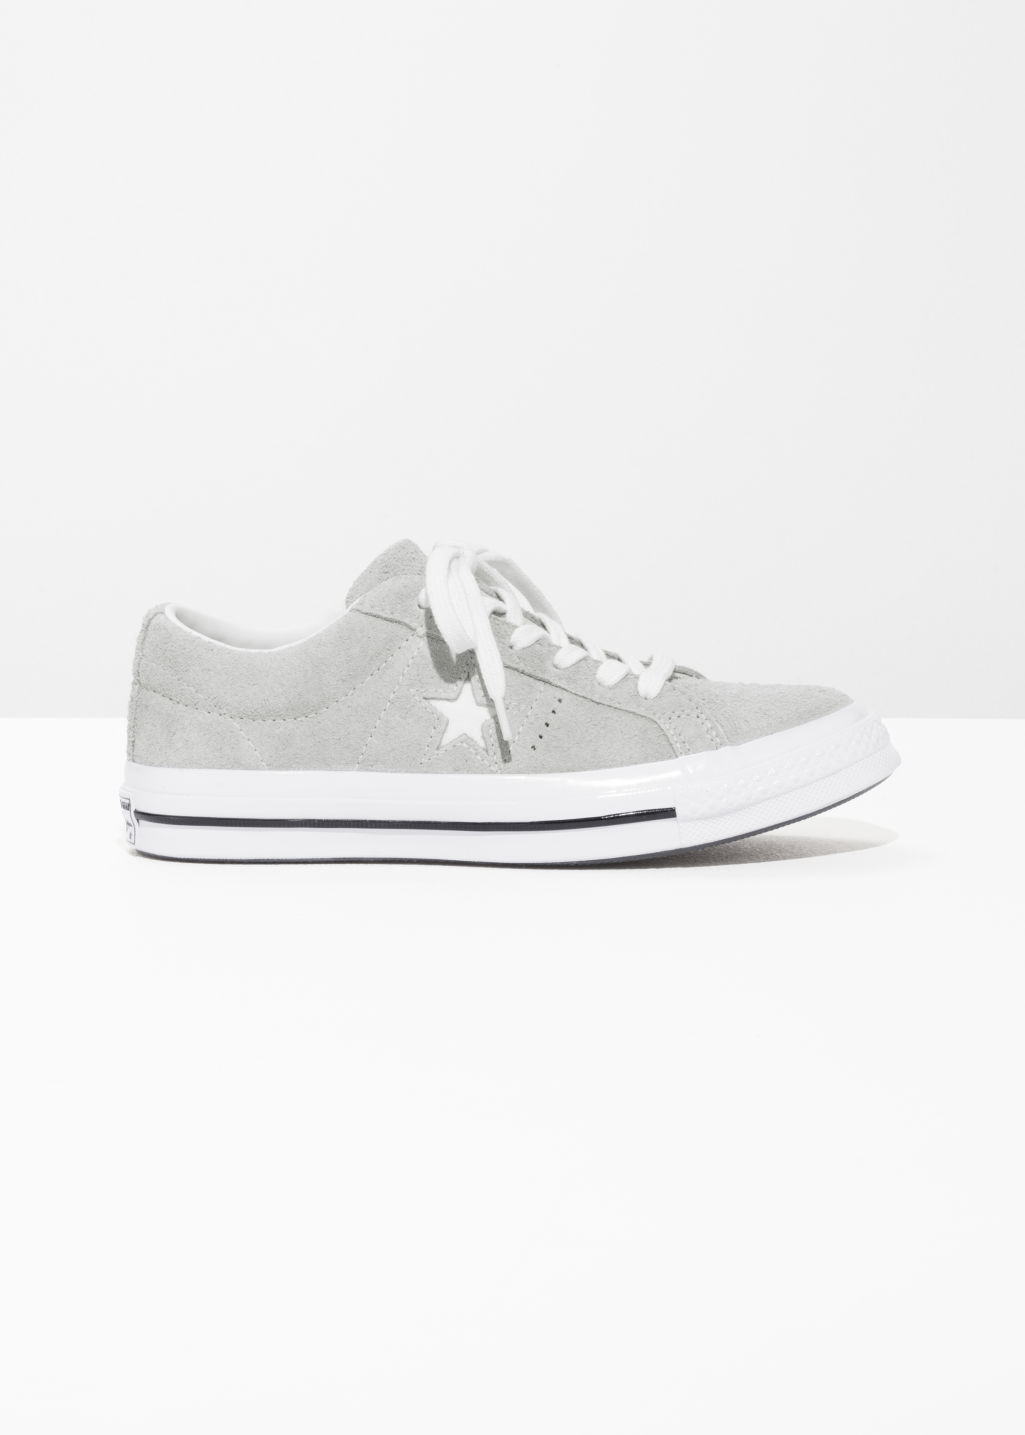 & OTHER STORIES Converse One Star- OX lBrRhLnrz